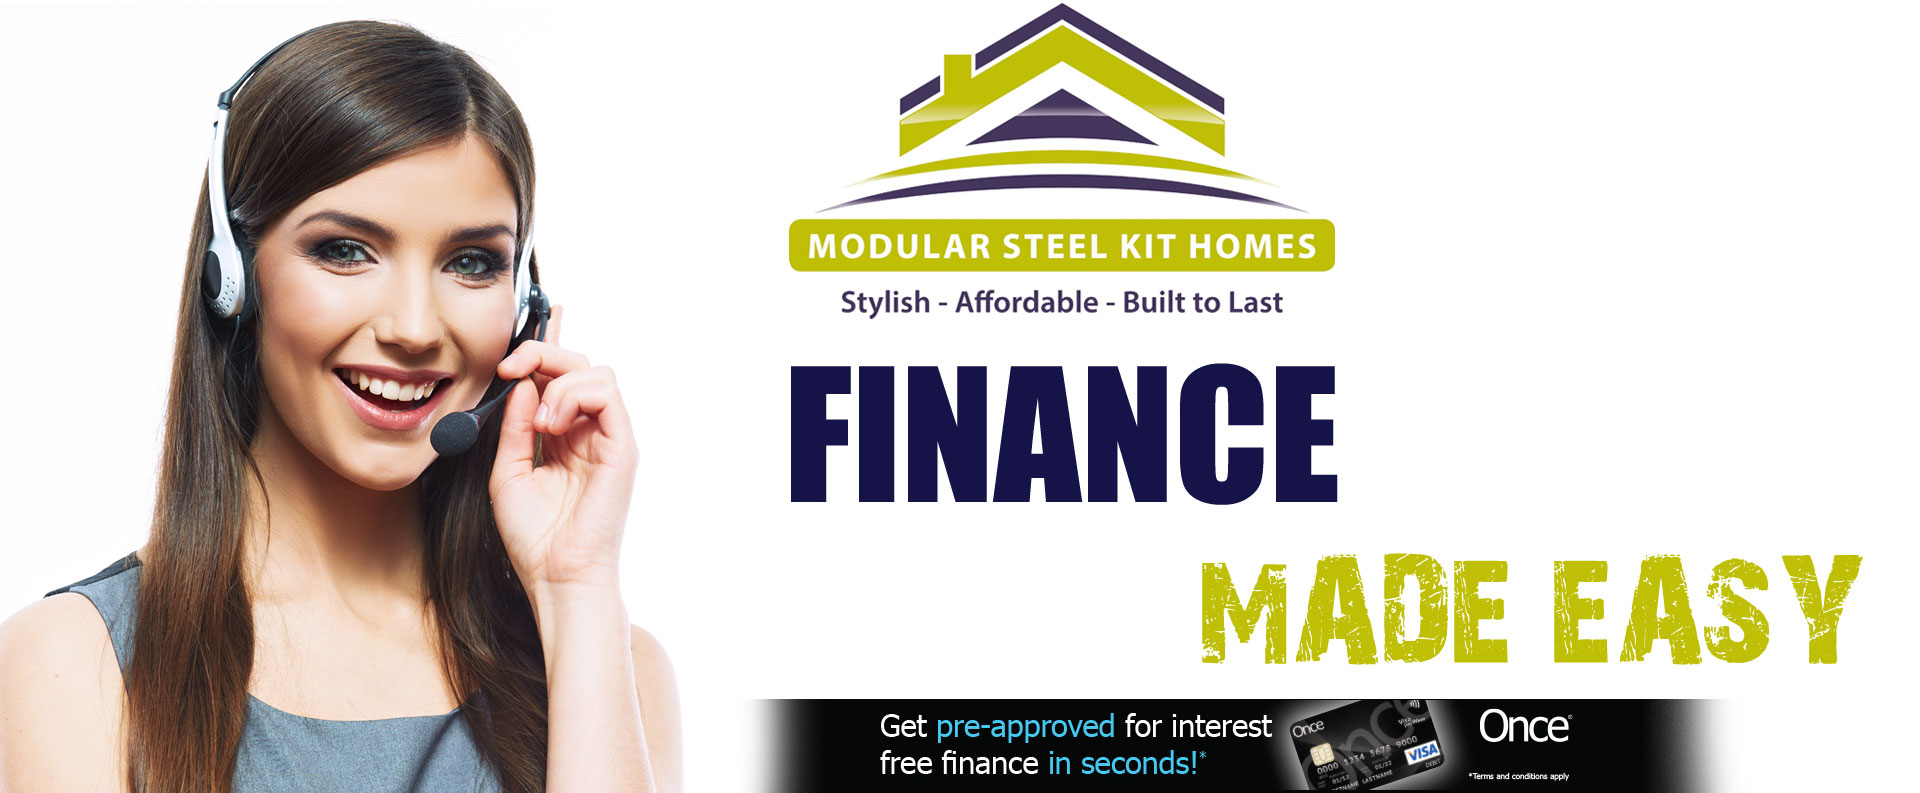 Modular Steel Kit Homes Finance